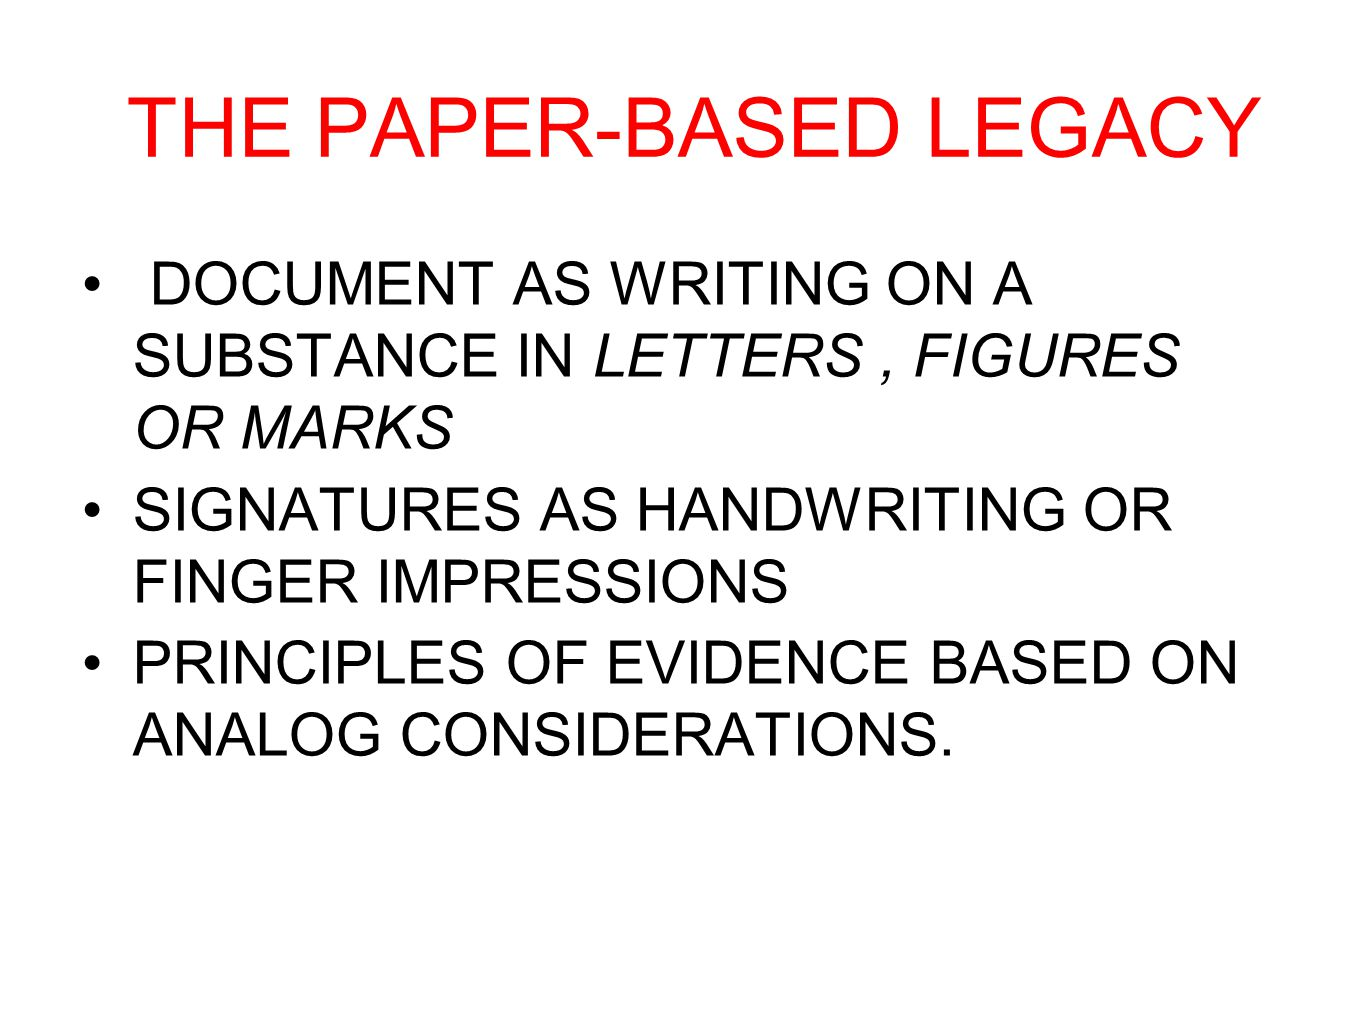 THE PAPER-BASED LEGACY DOCUMENT AS WRITING ON A SUBSTANCE IN LETTERS, FIGURES OR MARKS SIGNATURES AS HANDWRITING OR FINGER IMPRESSIONS PRINCIPLES OF E